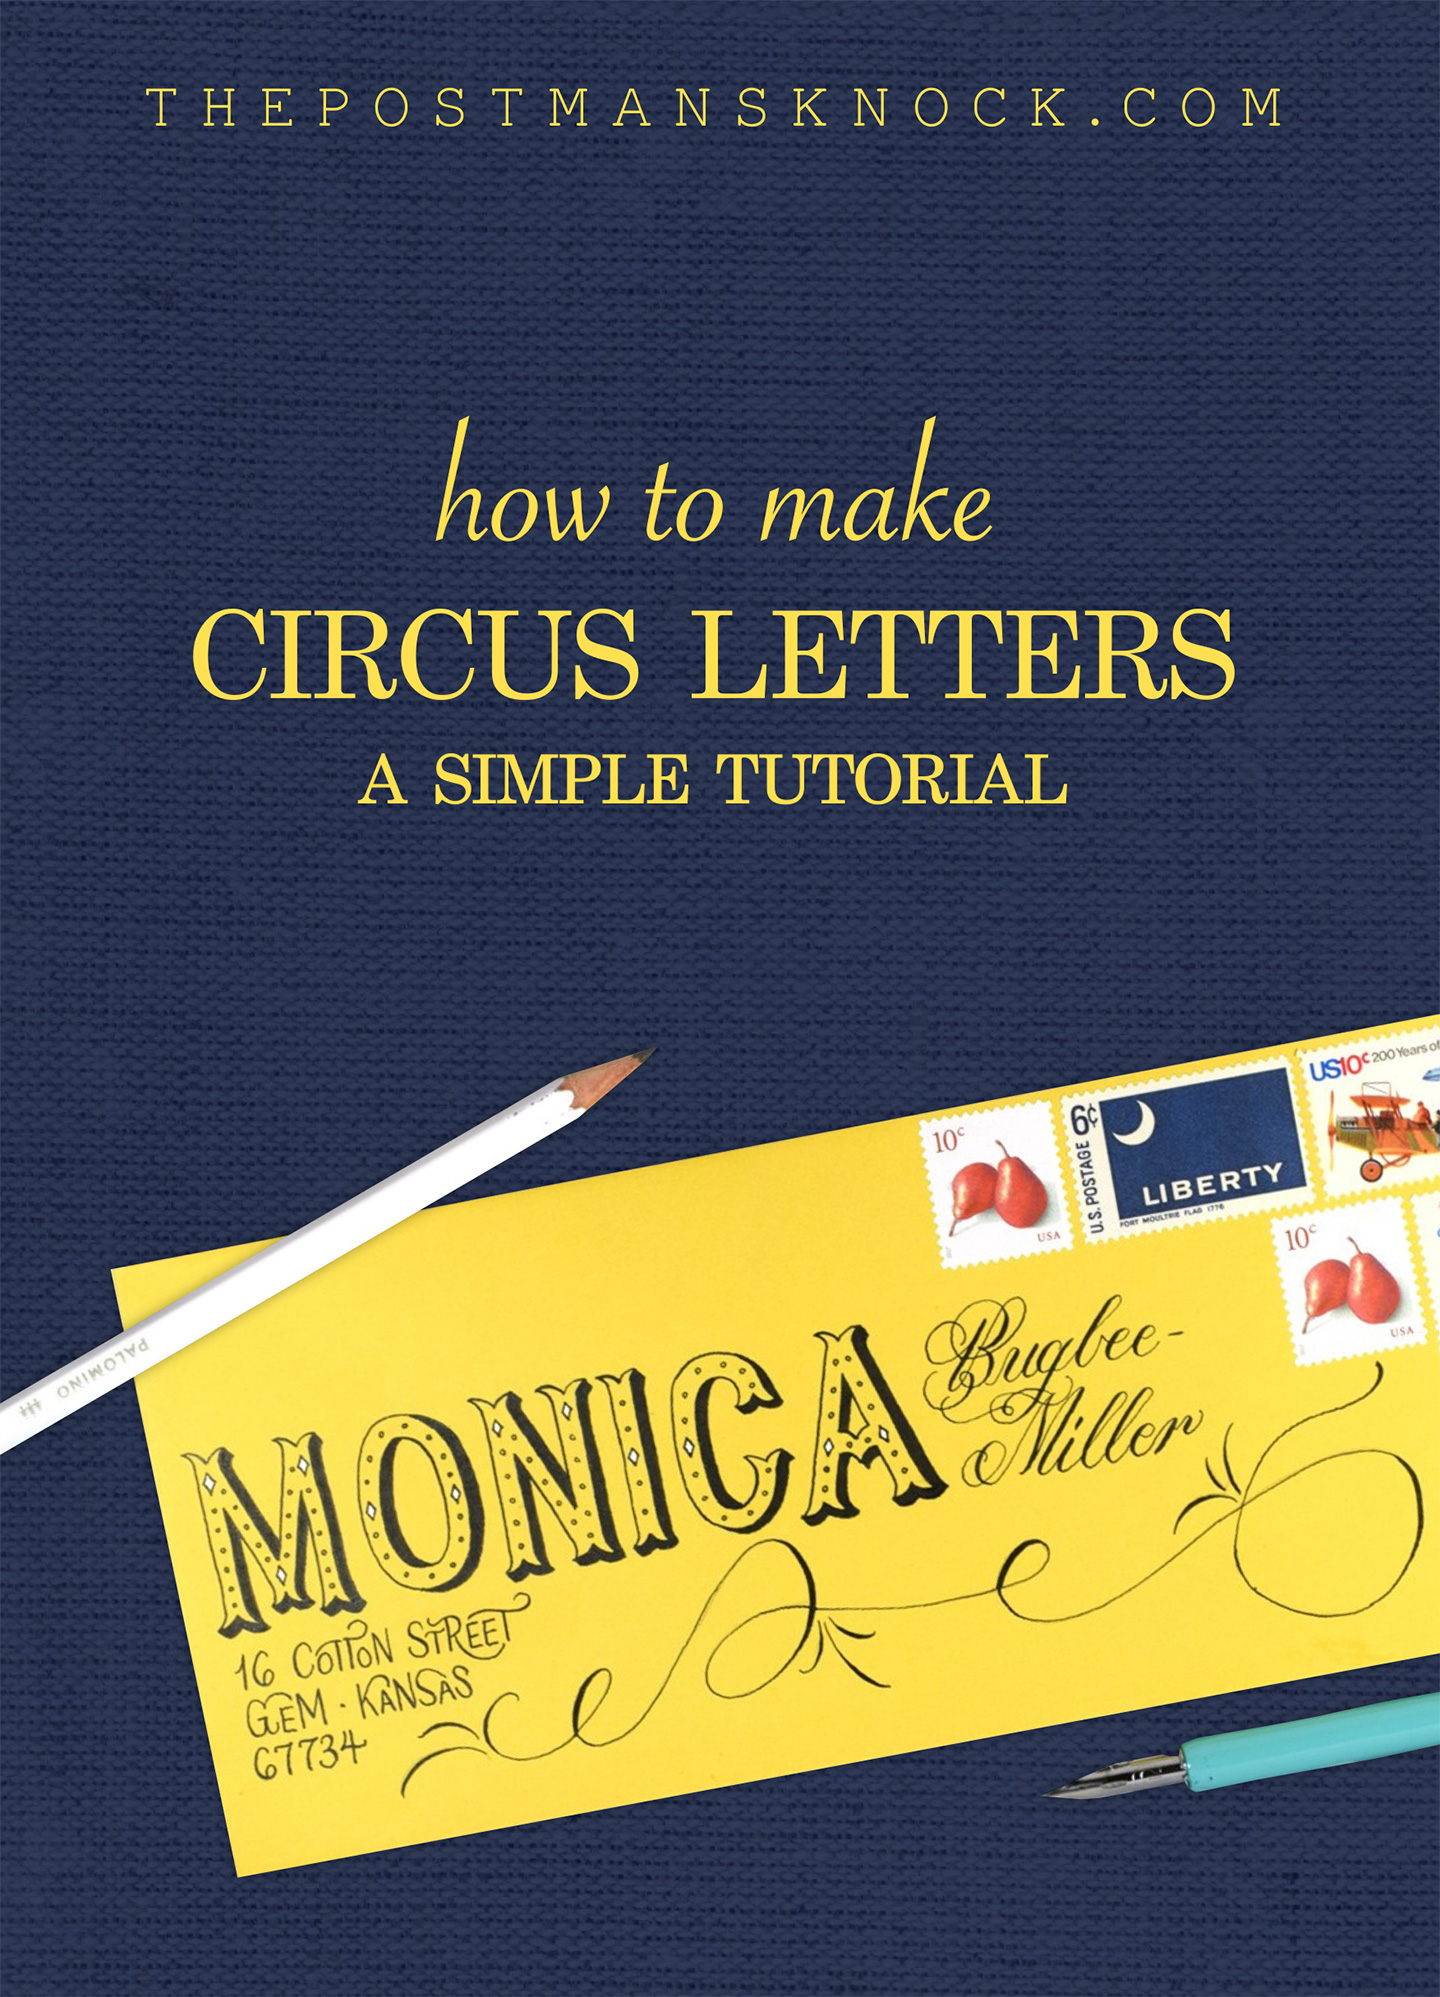 How to Create Circus Lettering | The Postman's Knock